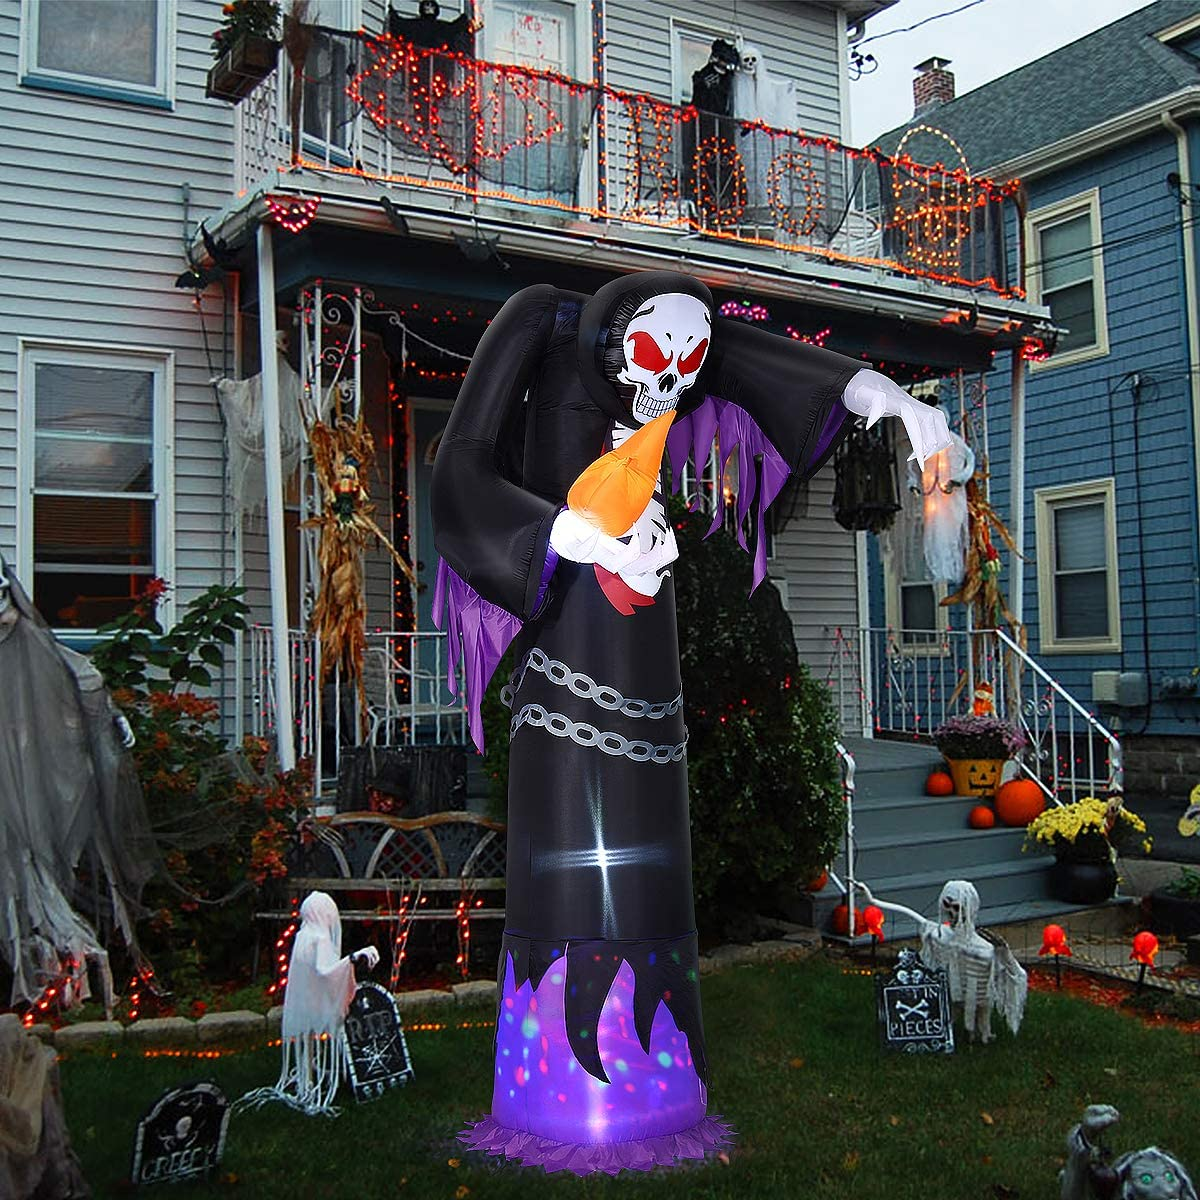 Blow Up LED Lights 10FT Halloween Inflatable Grim Reaper Model for Outdoor Garden Yard Lawn Party Holiday Decoration